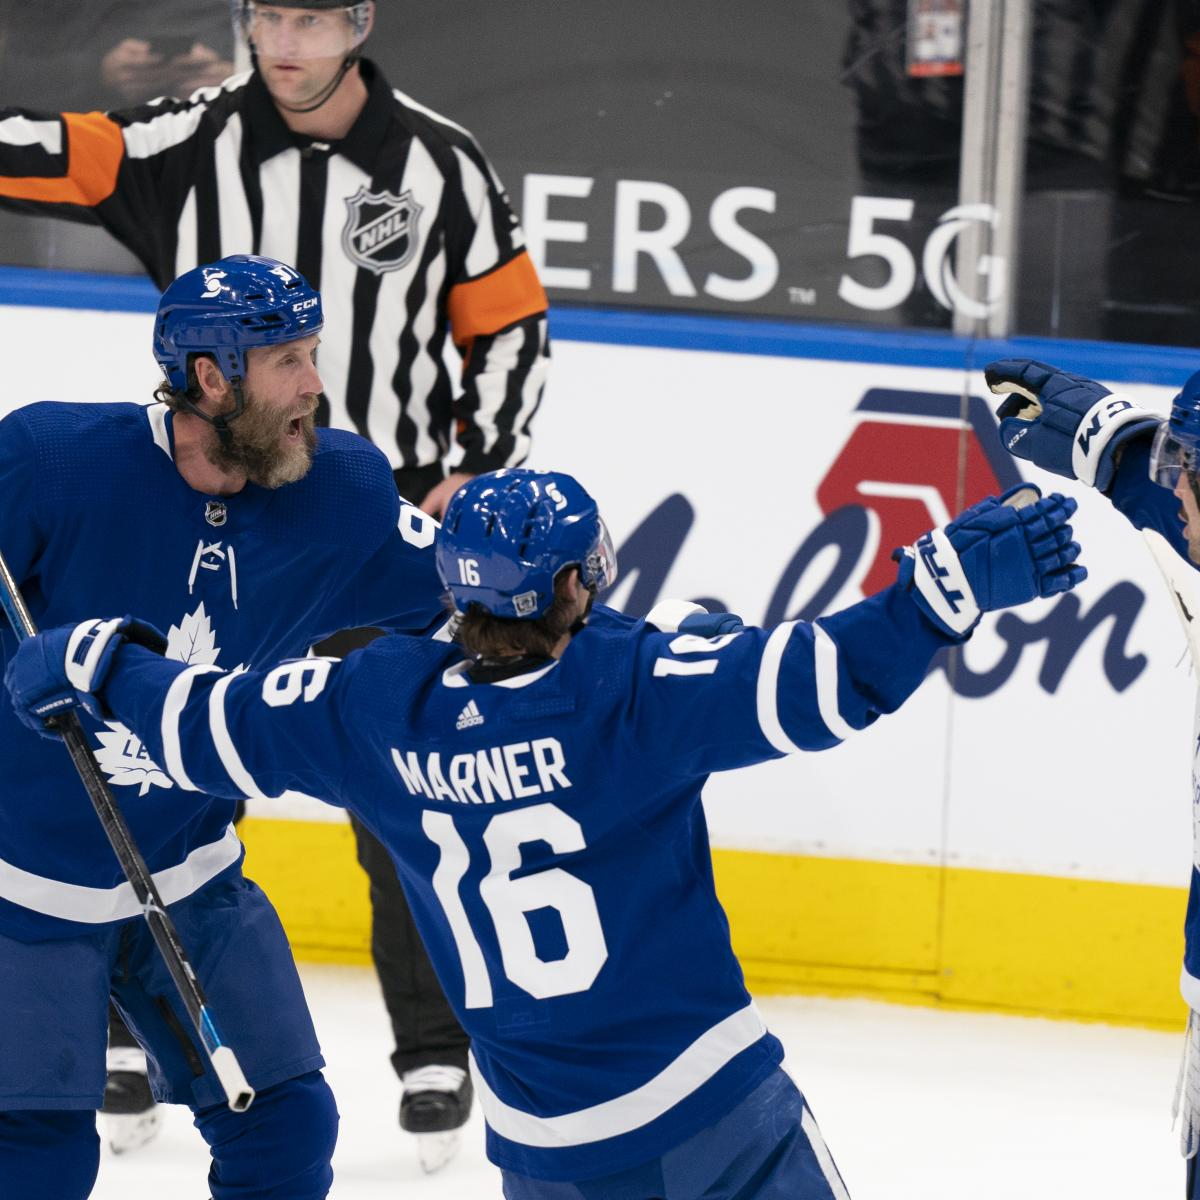 Maple Leafs Clinch Playoff Berth; Latest 2021 NHL Standings, Playoff Picture thumbnail